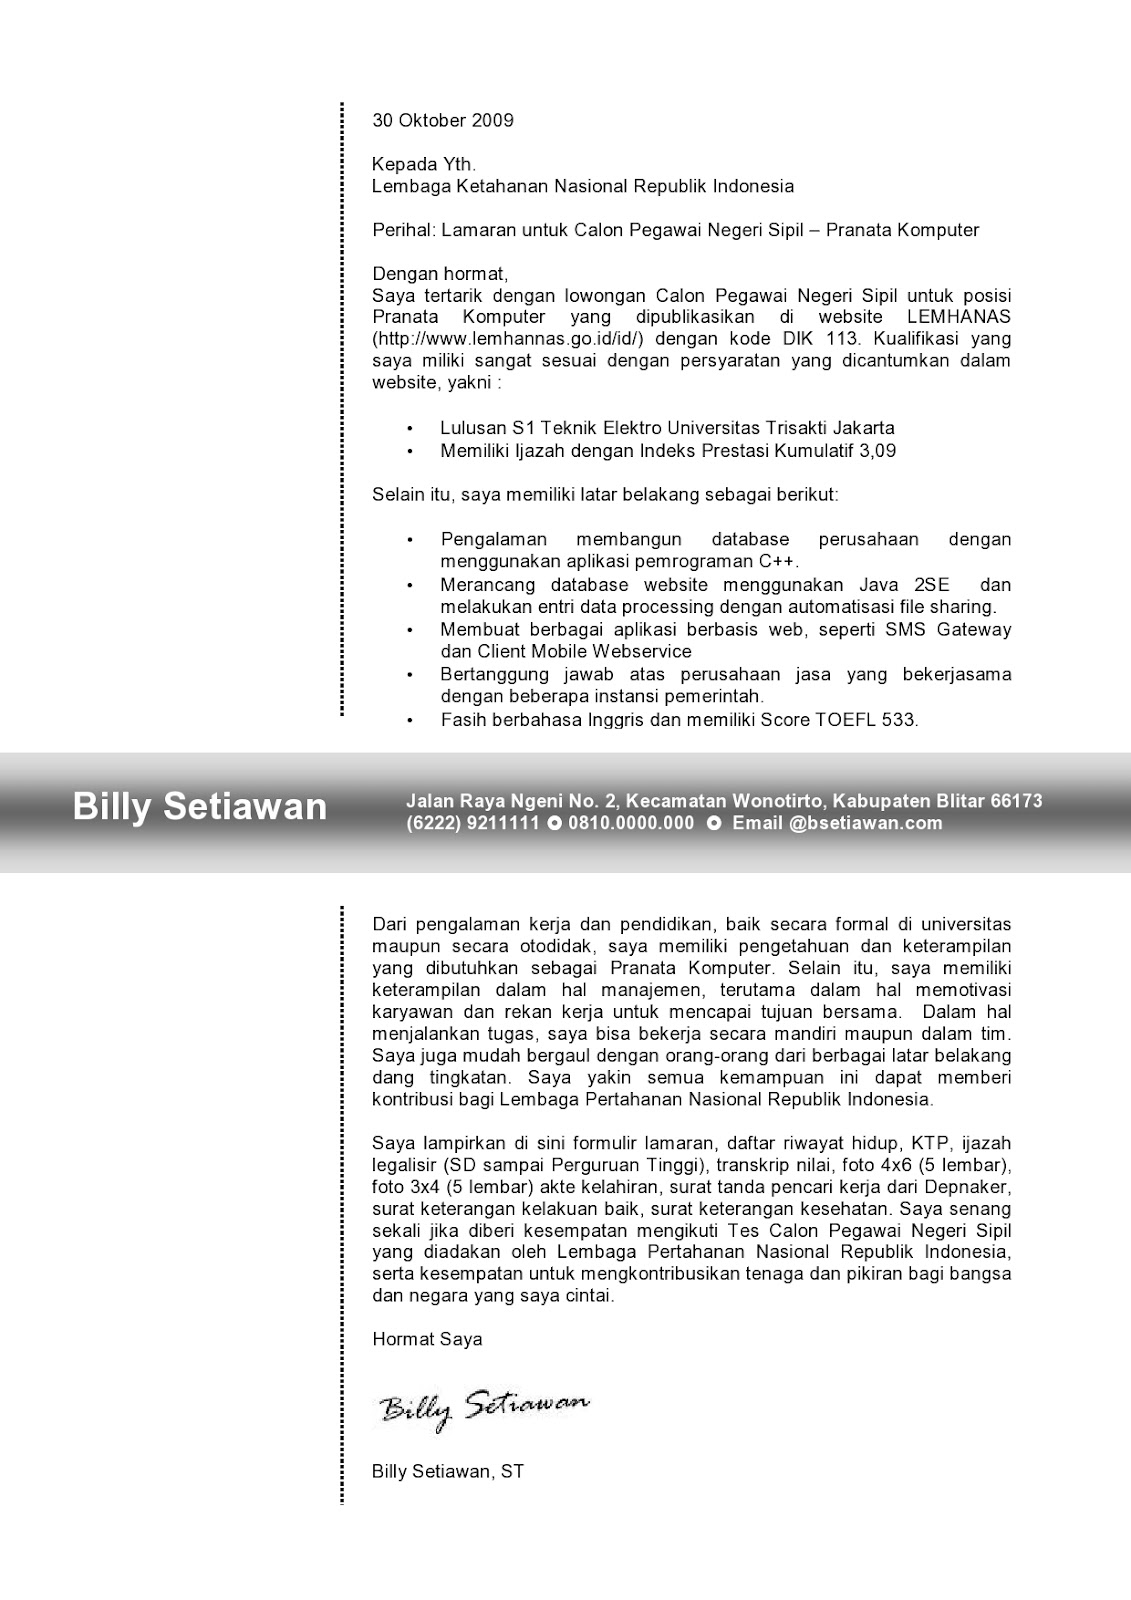 staff accountant cover letter essay speech format teacher sample cover letter for staff accountant attached resume - Accountant Cover Letter 2